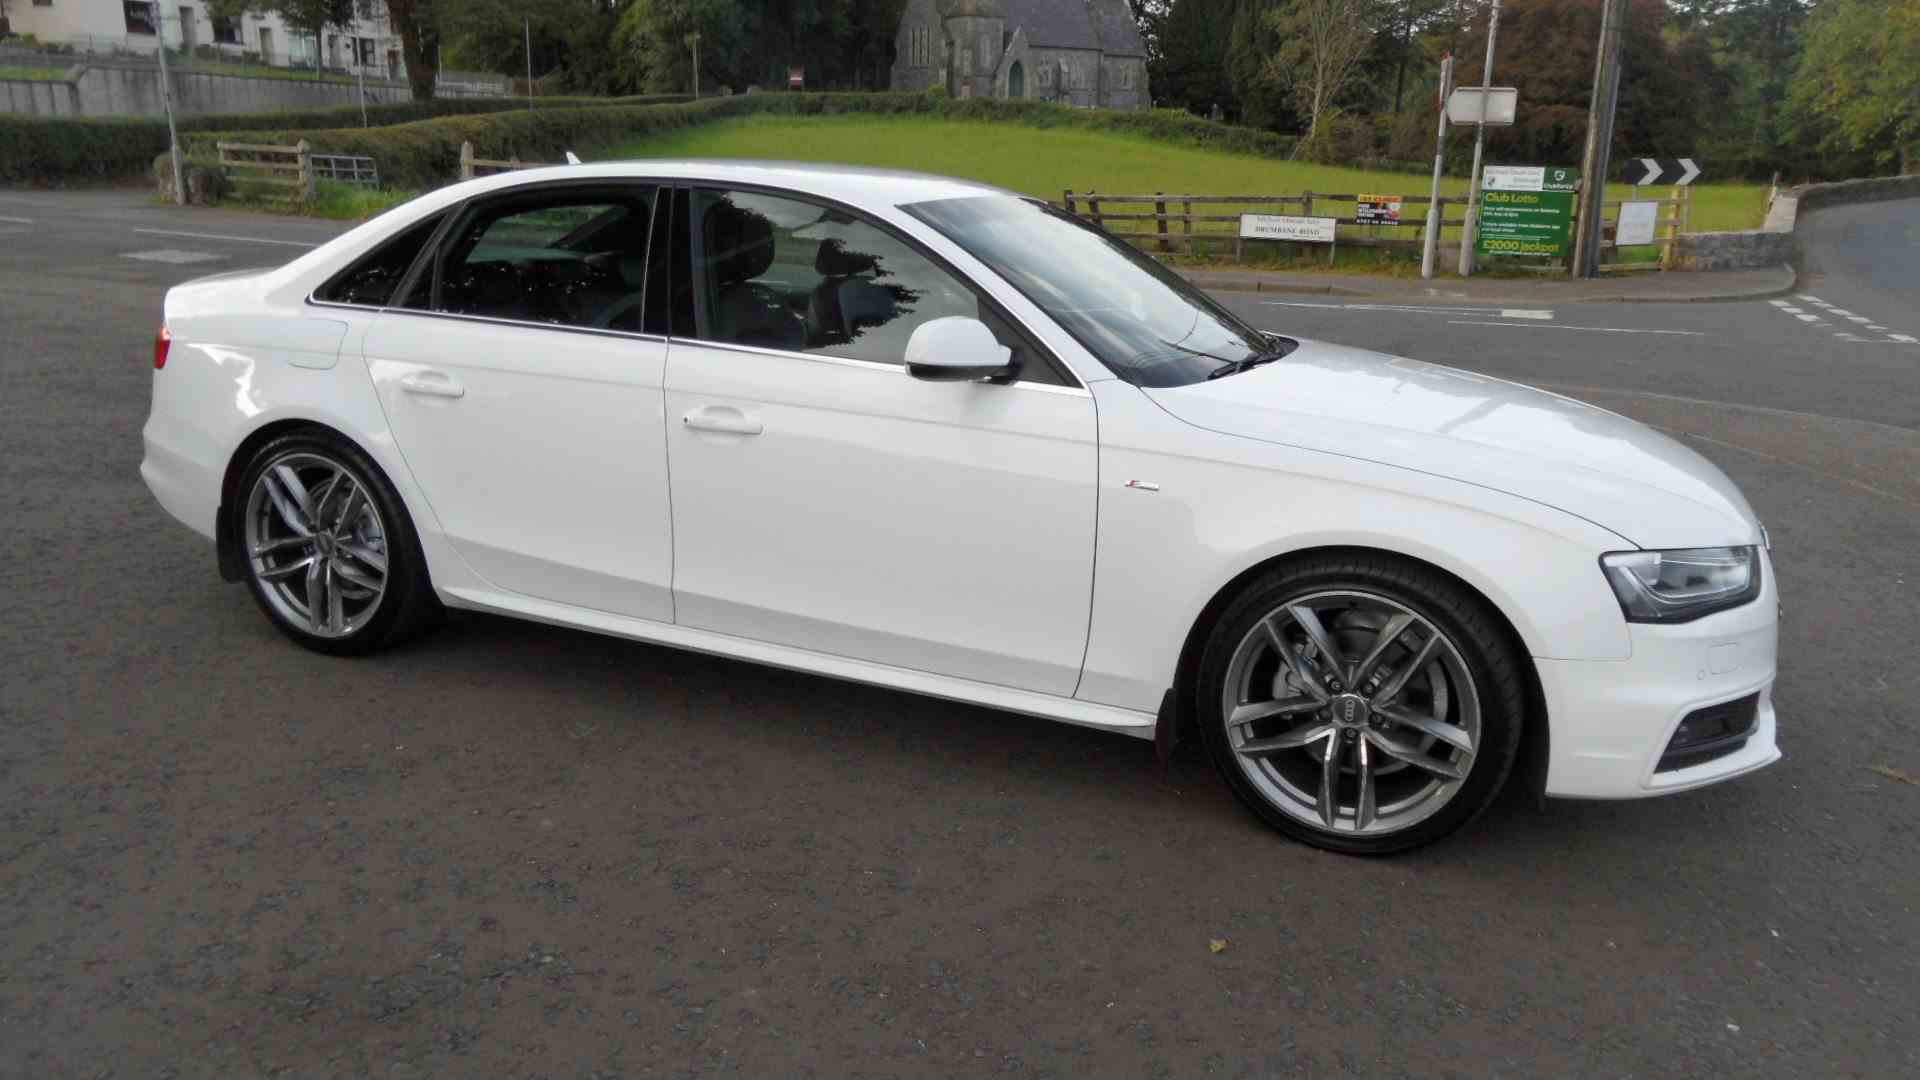 Beautiful A4 SLine, being fully serviced this week, call Sean on 07970936458 or 02879401371 to arrange a test drive or a keen finance quote from Northridge or Motonovo